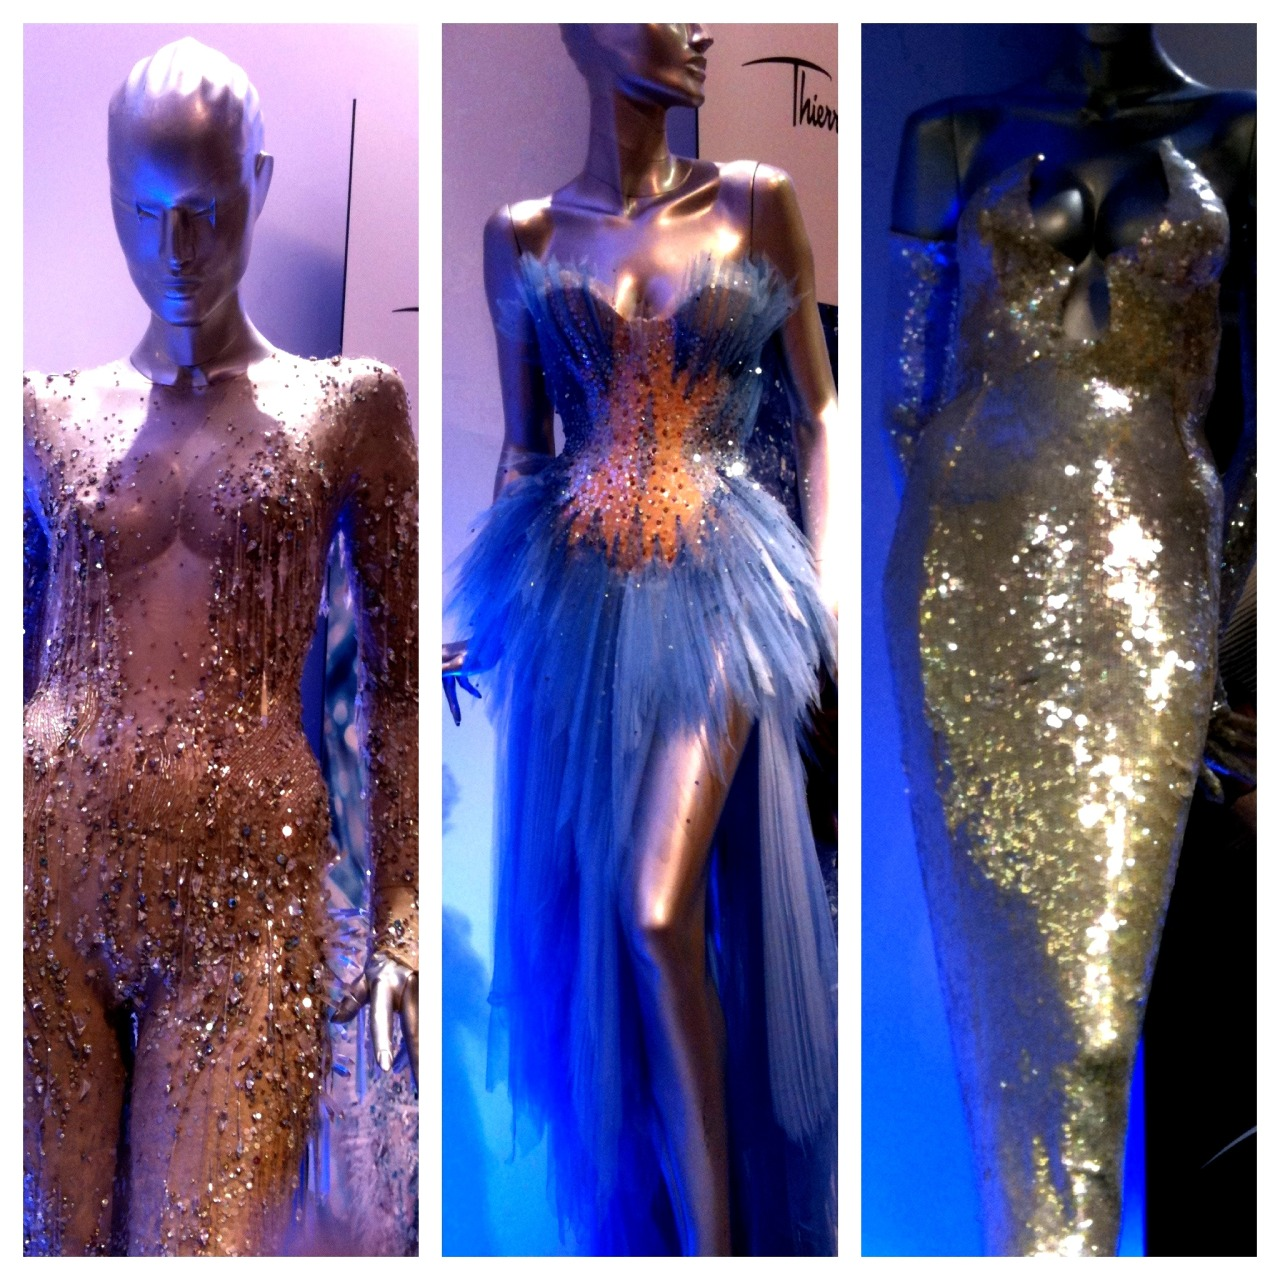 Thierry Mugler outfits used in the Angel Parfum campaigns over the years.  Left: Ice crystal bodysuit from the S/S 1998 Haute Couture collection worn by Amy Wesson for the 1998 campaign. Center: Custom made corset with tulle skirt worn by Naomi Watts for the 2008 campaign. Right: White embellished evening gown from the S/S 1994 Haute Couture collection worn by Jerry Hall for the 1995 campaign.